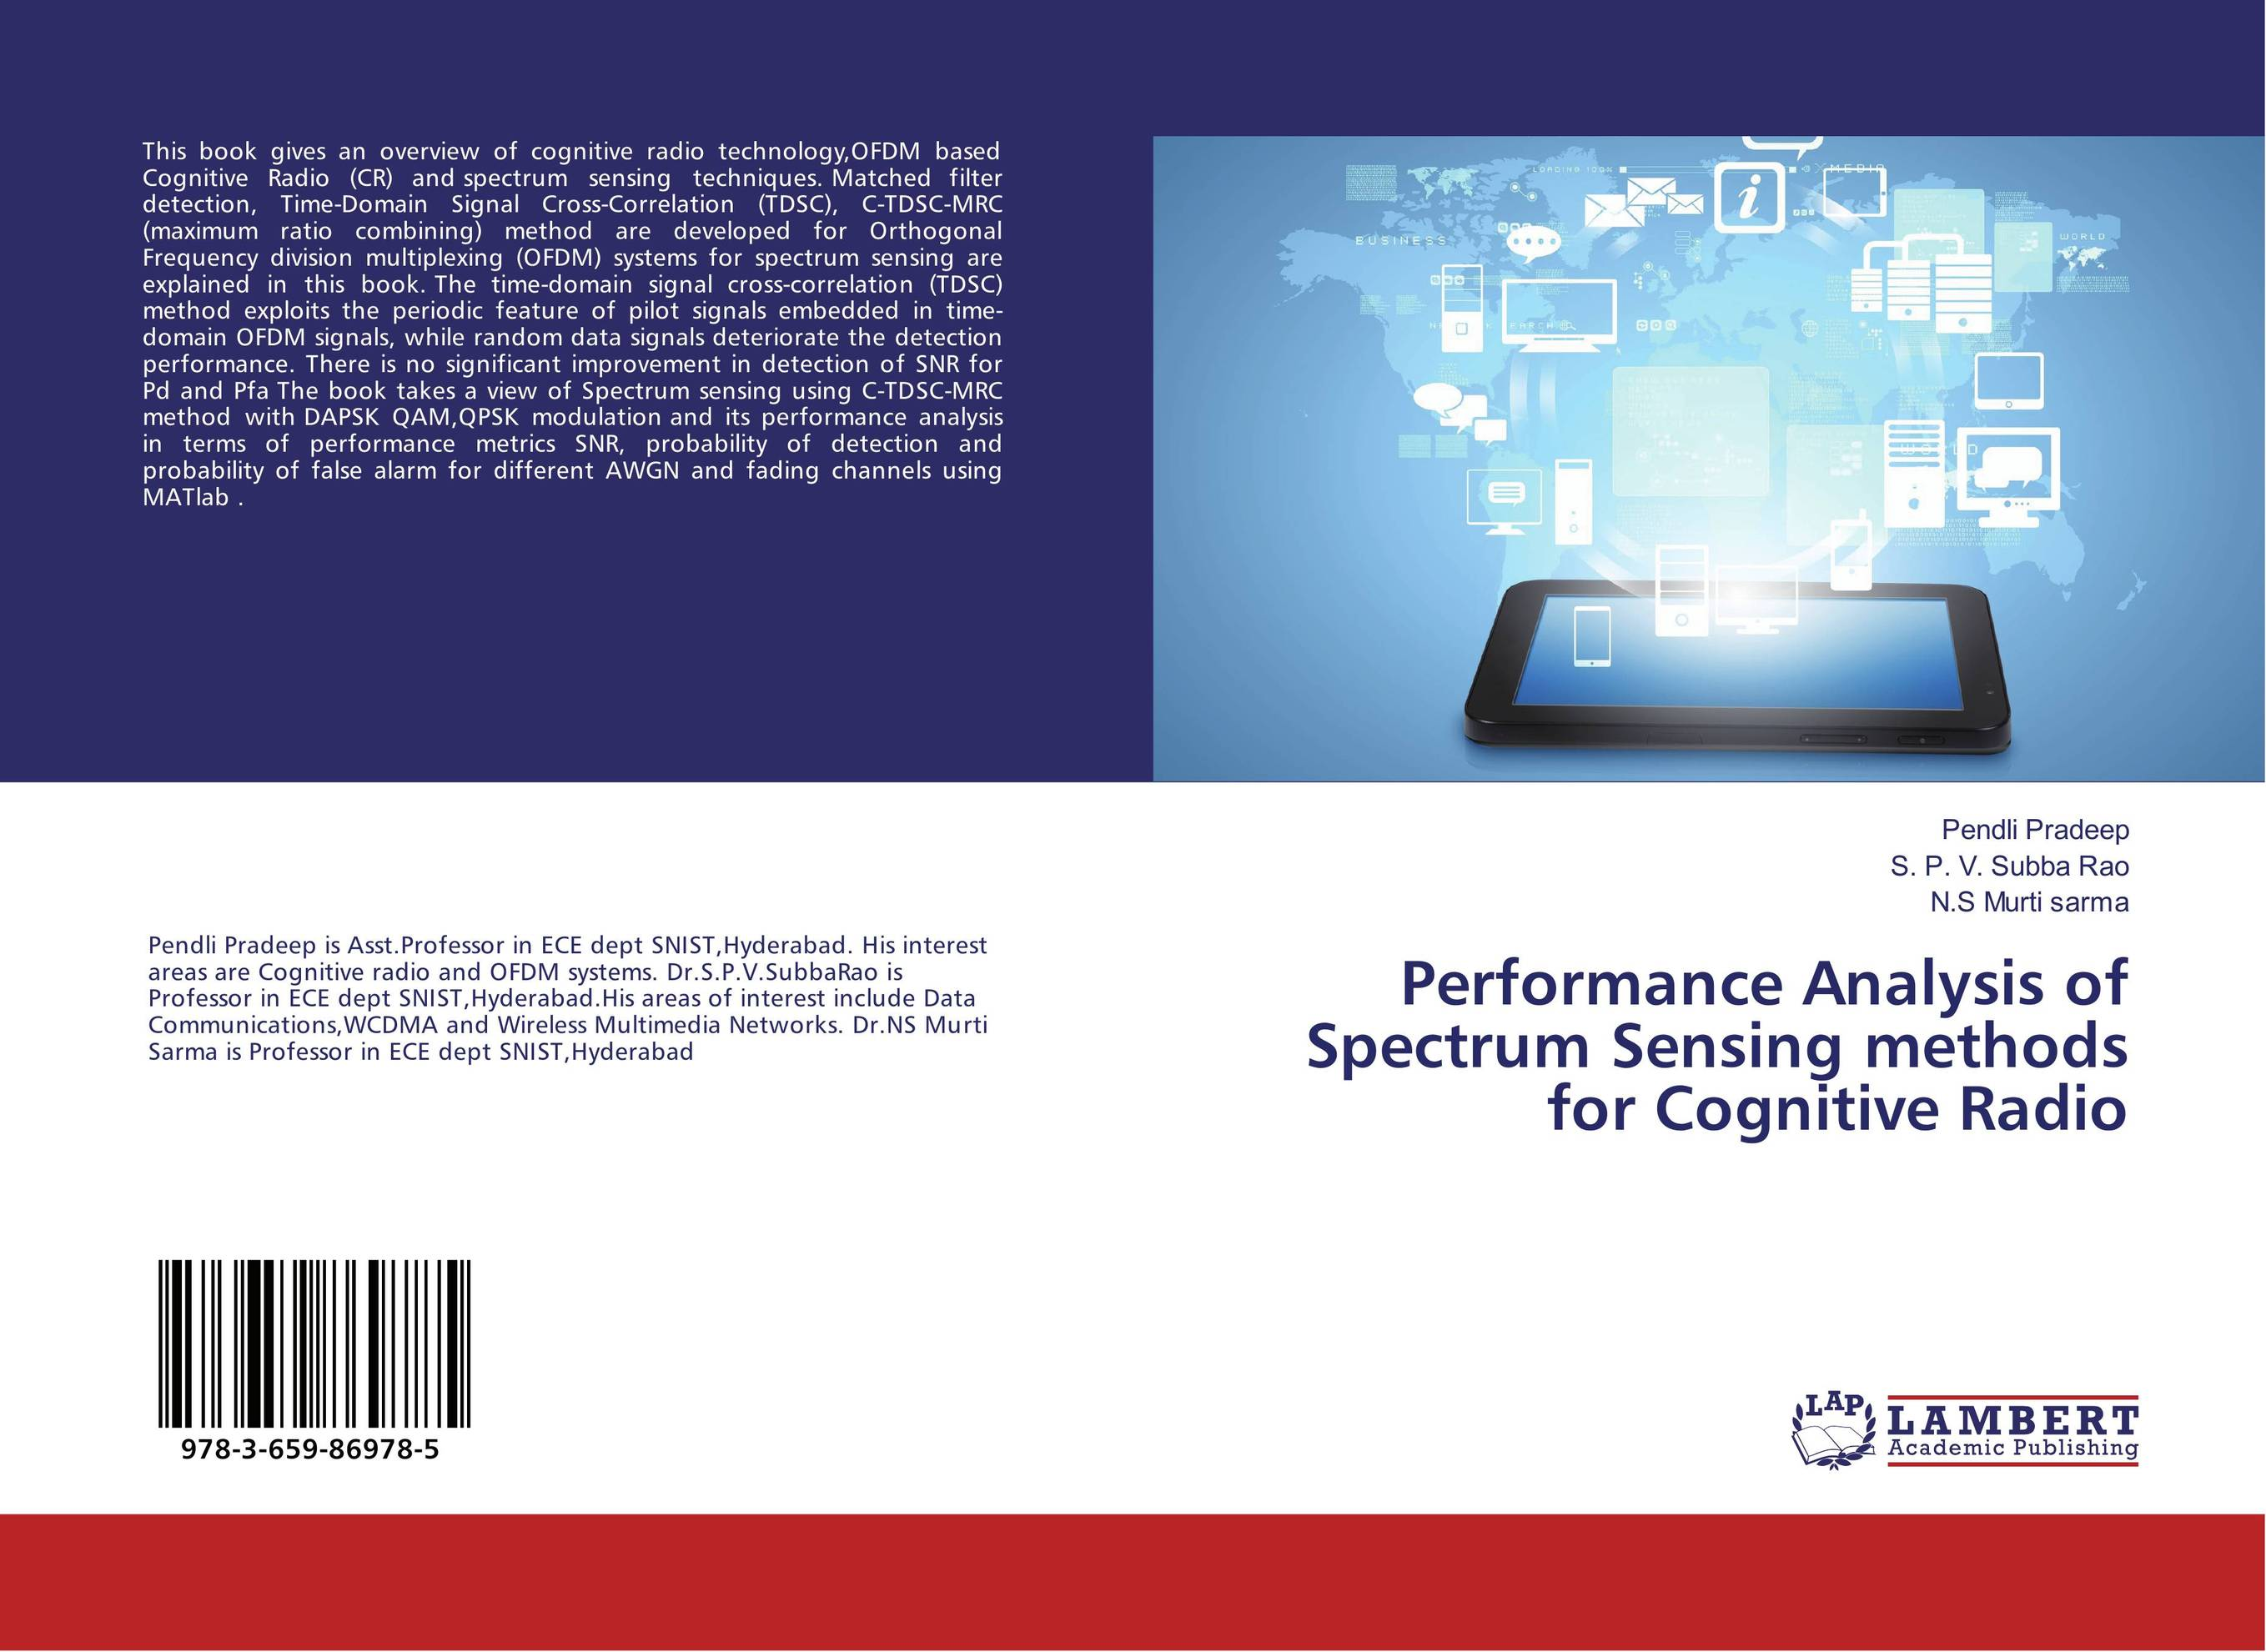 Performance Analysis of Spectrum Sensing methods for Cognitive Radio jai sukh paul singh cognitive radio spectrum sensing and its performance analysis